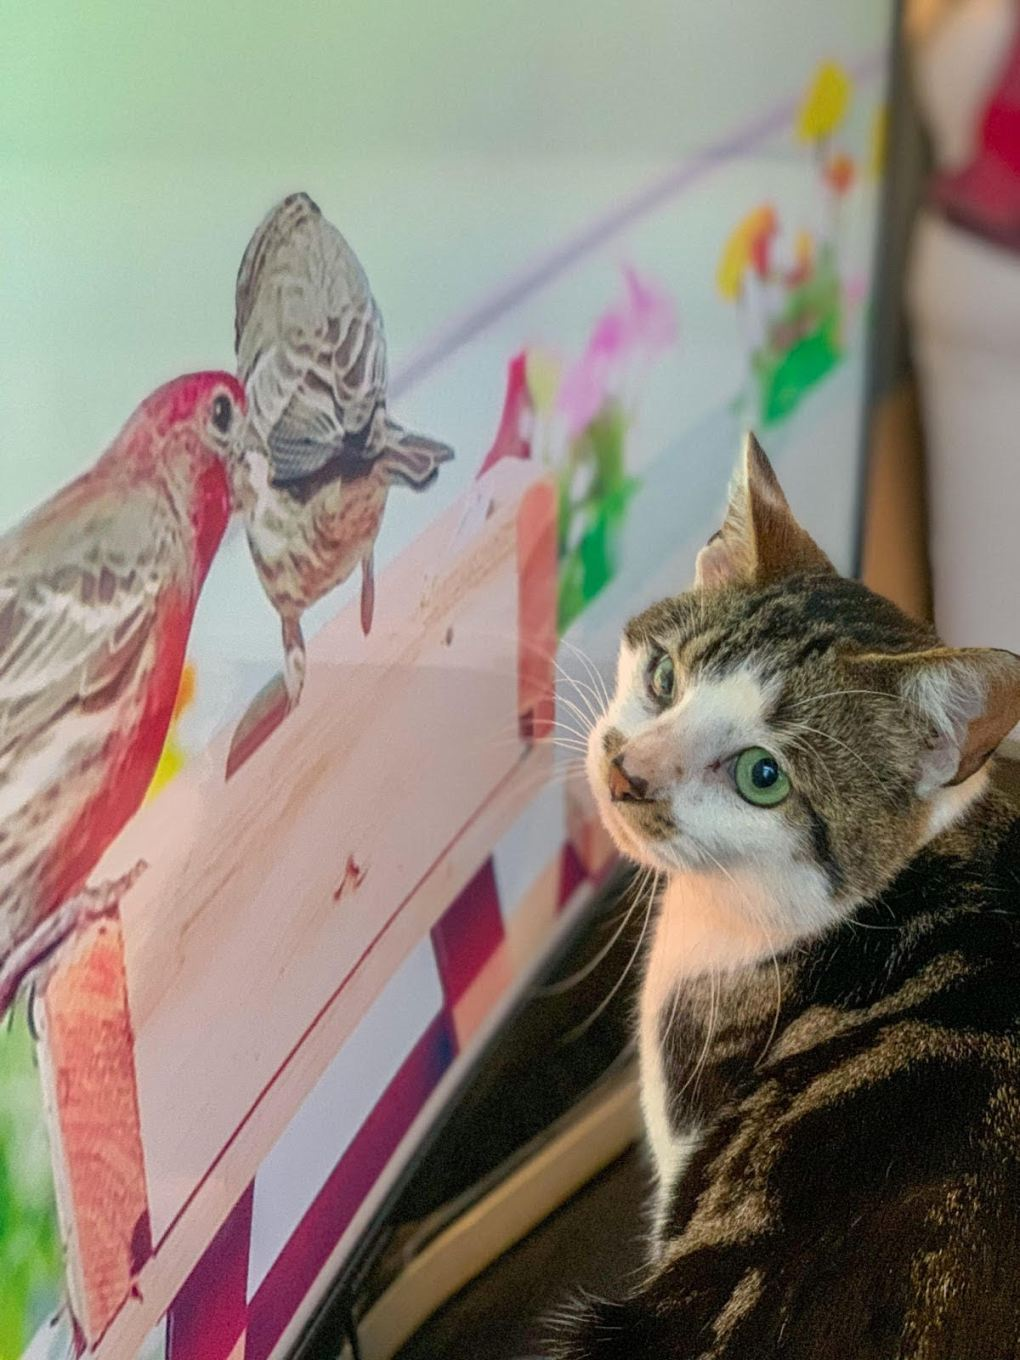 A cat looking at a drawing Description automatically generated with low confidence